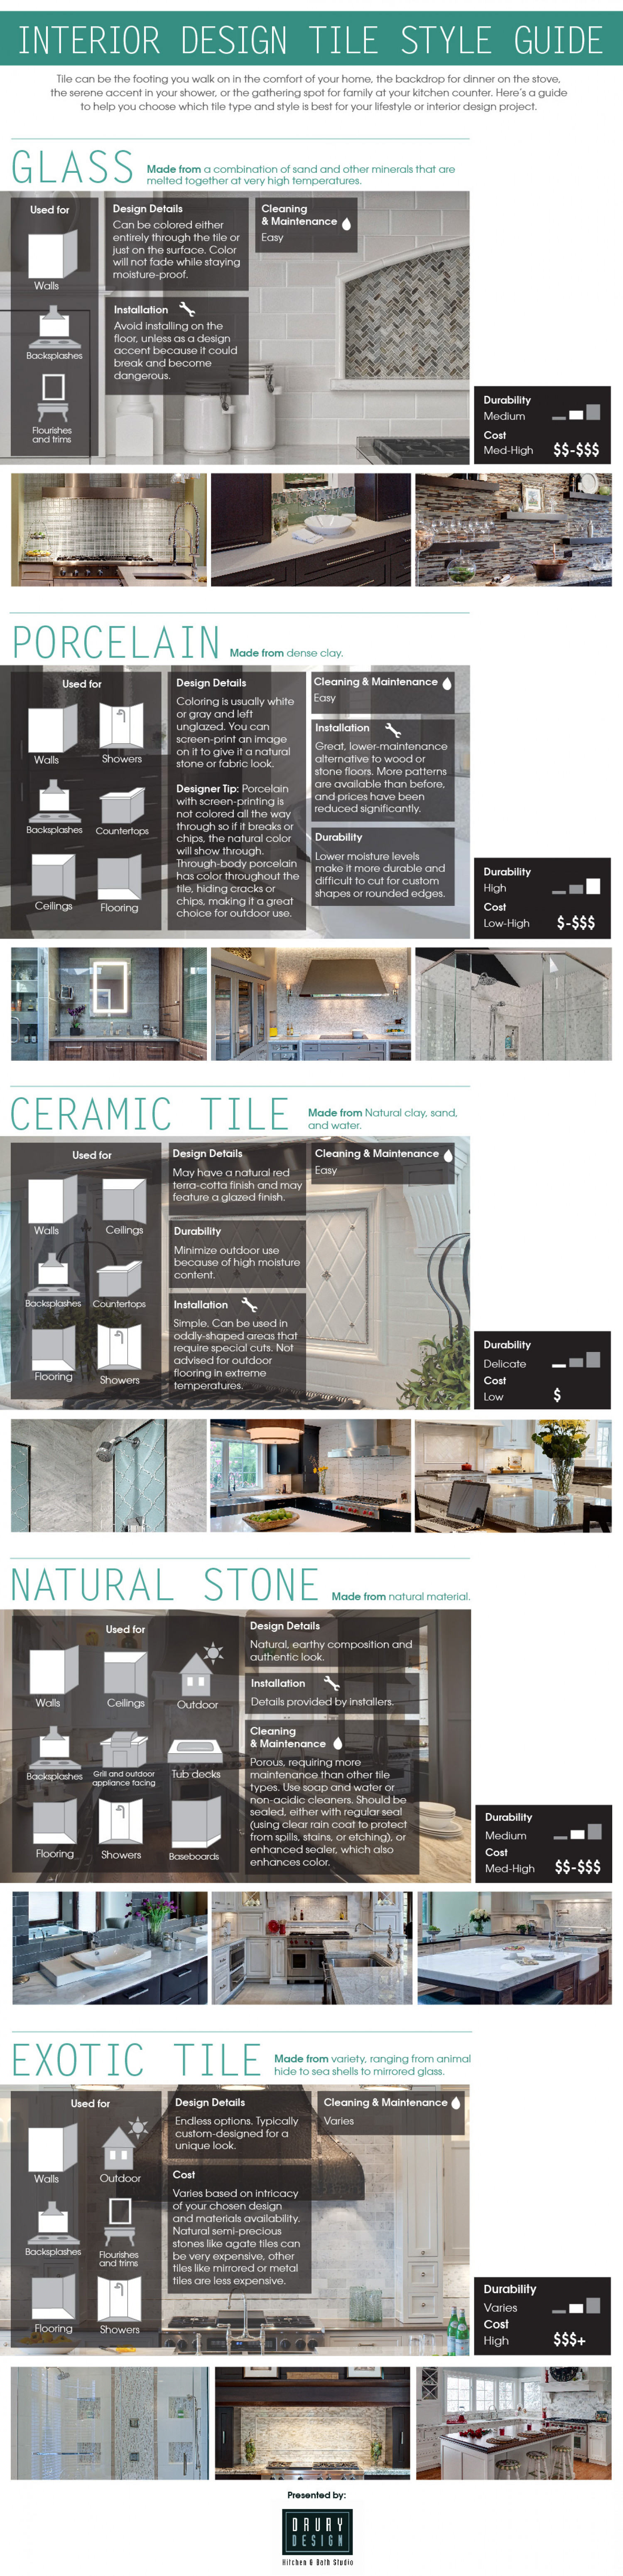 Interior Design Tile Style Guide Infographic